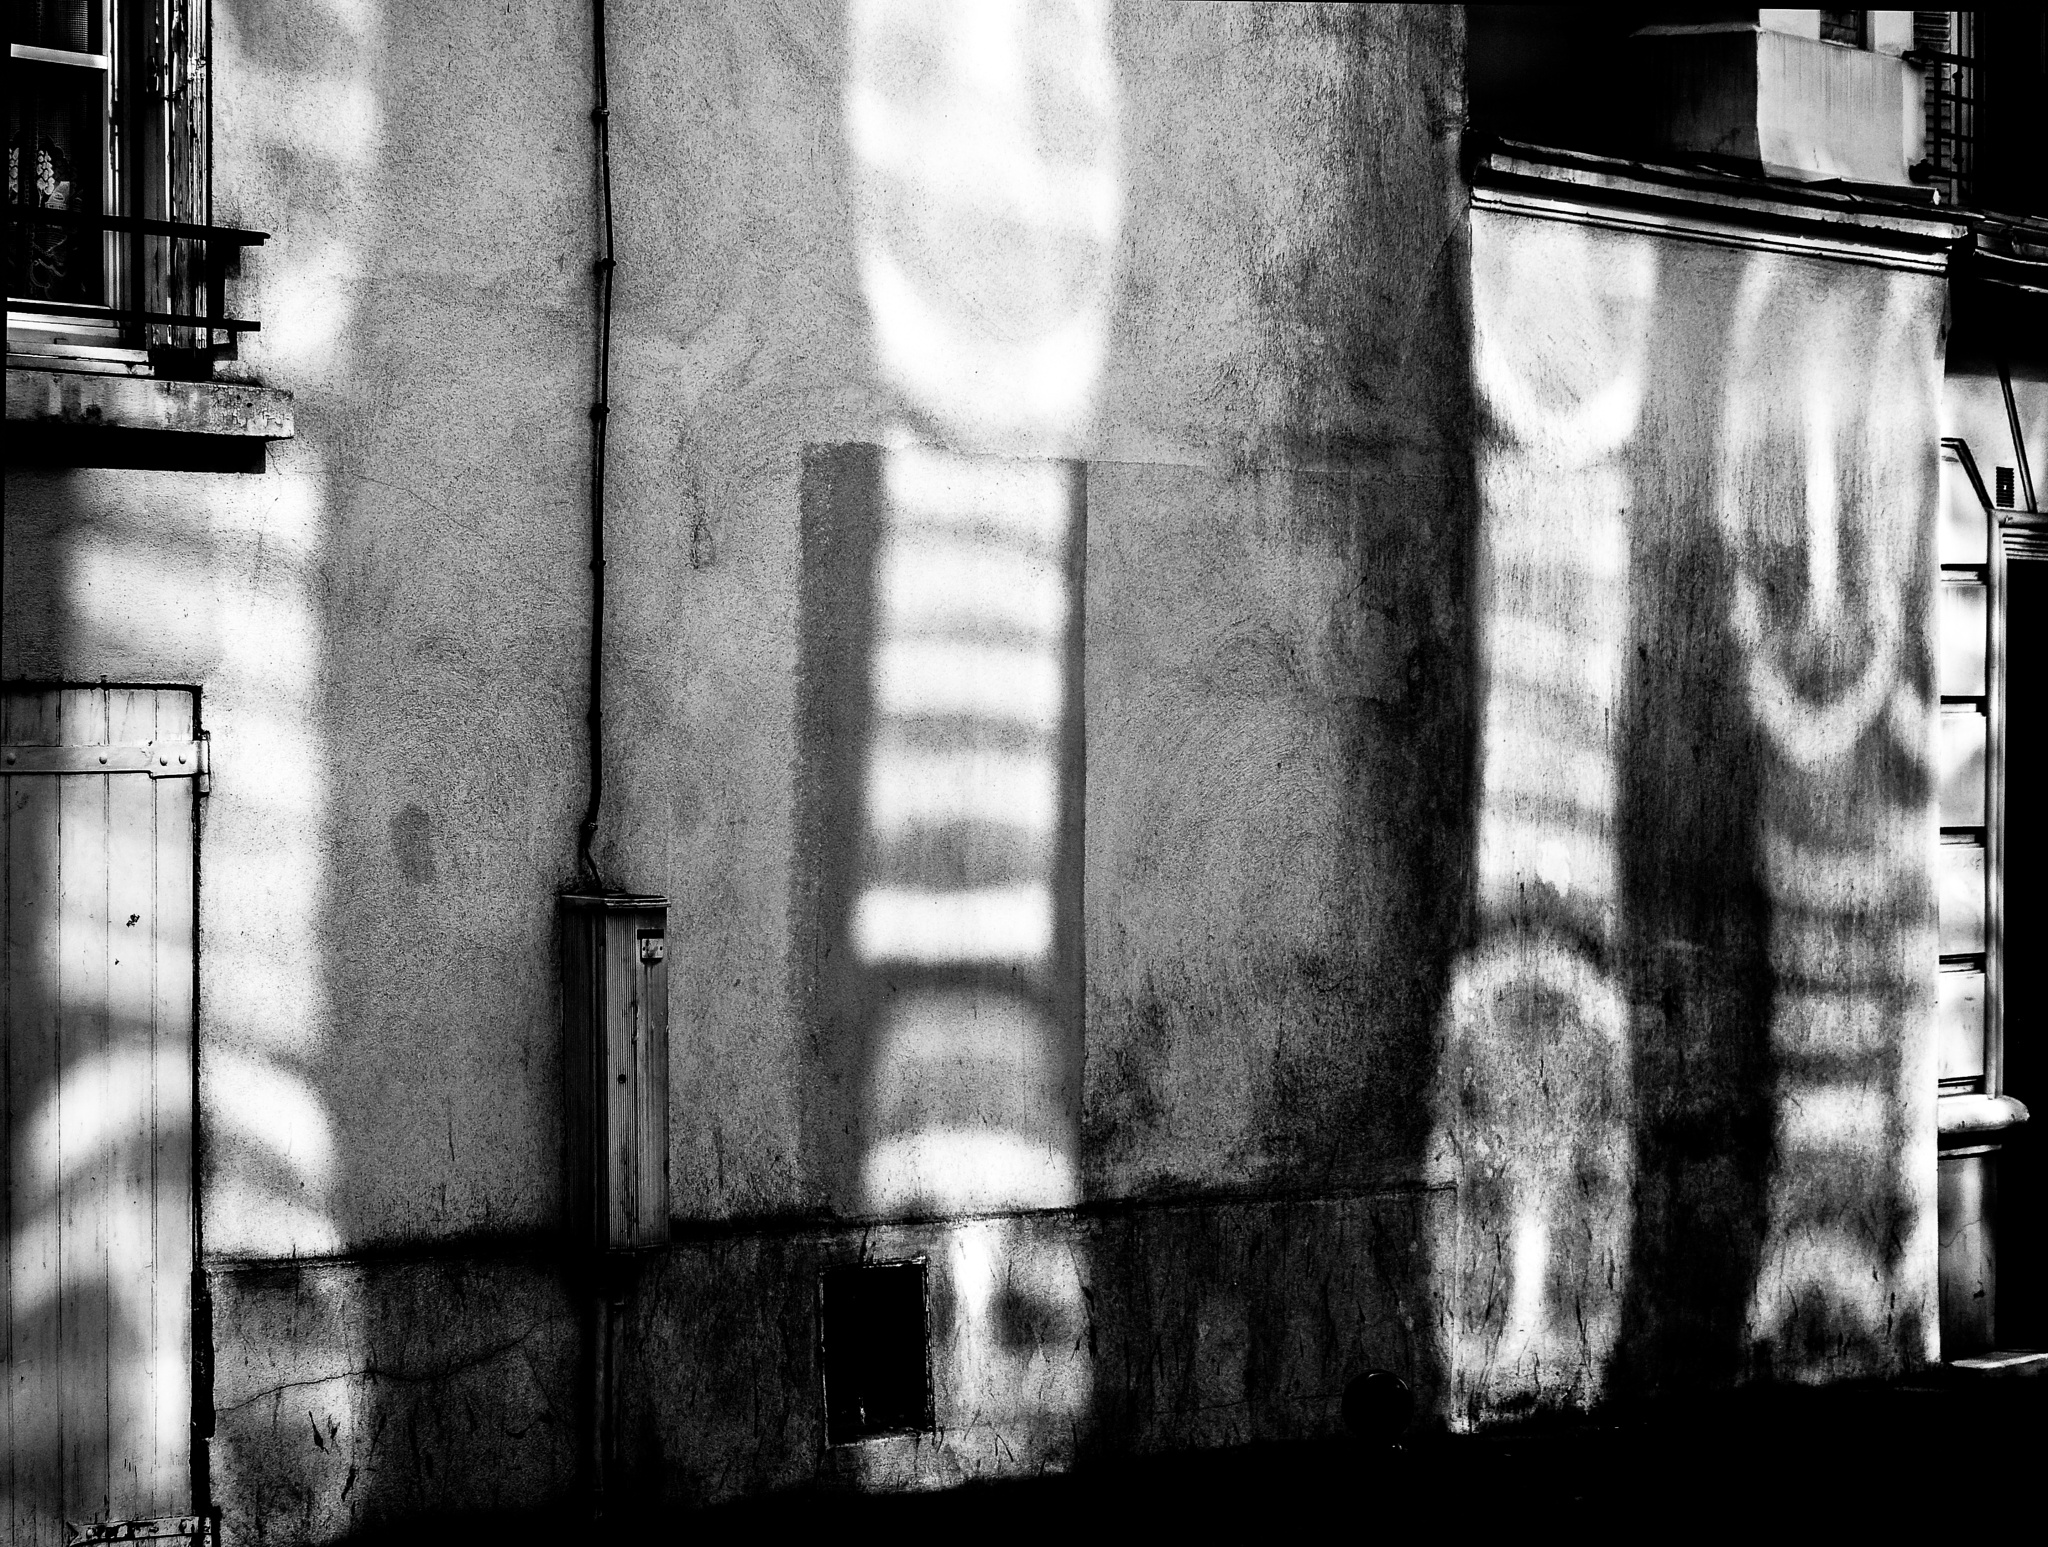 Abstract shadows on a wall, Paris by Martine de Lajudie